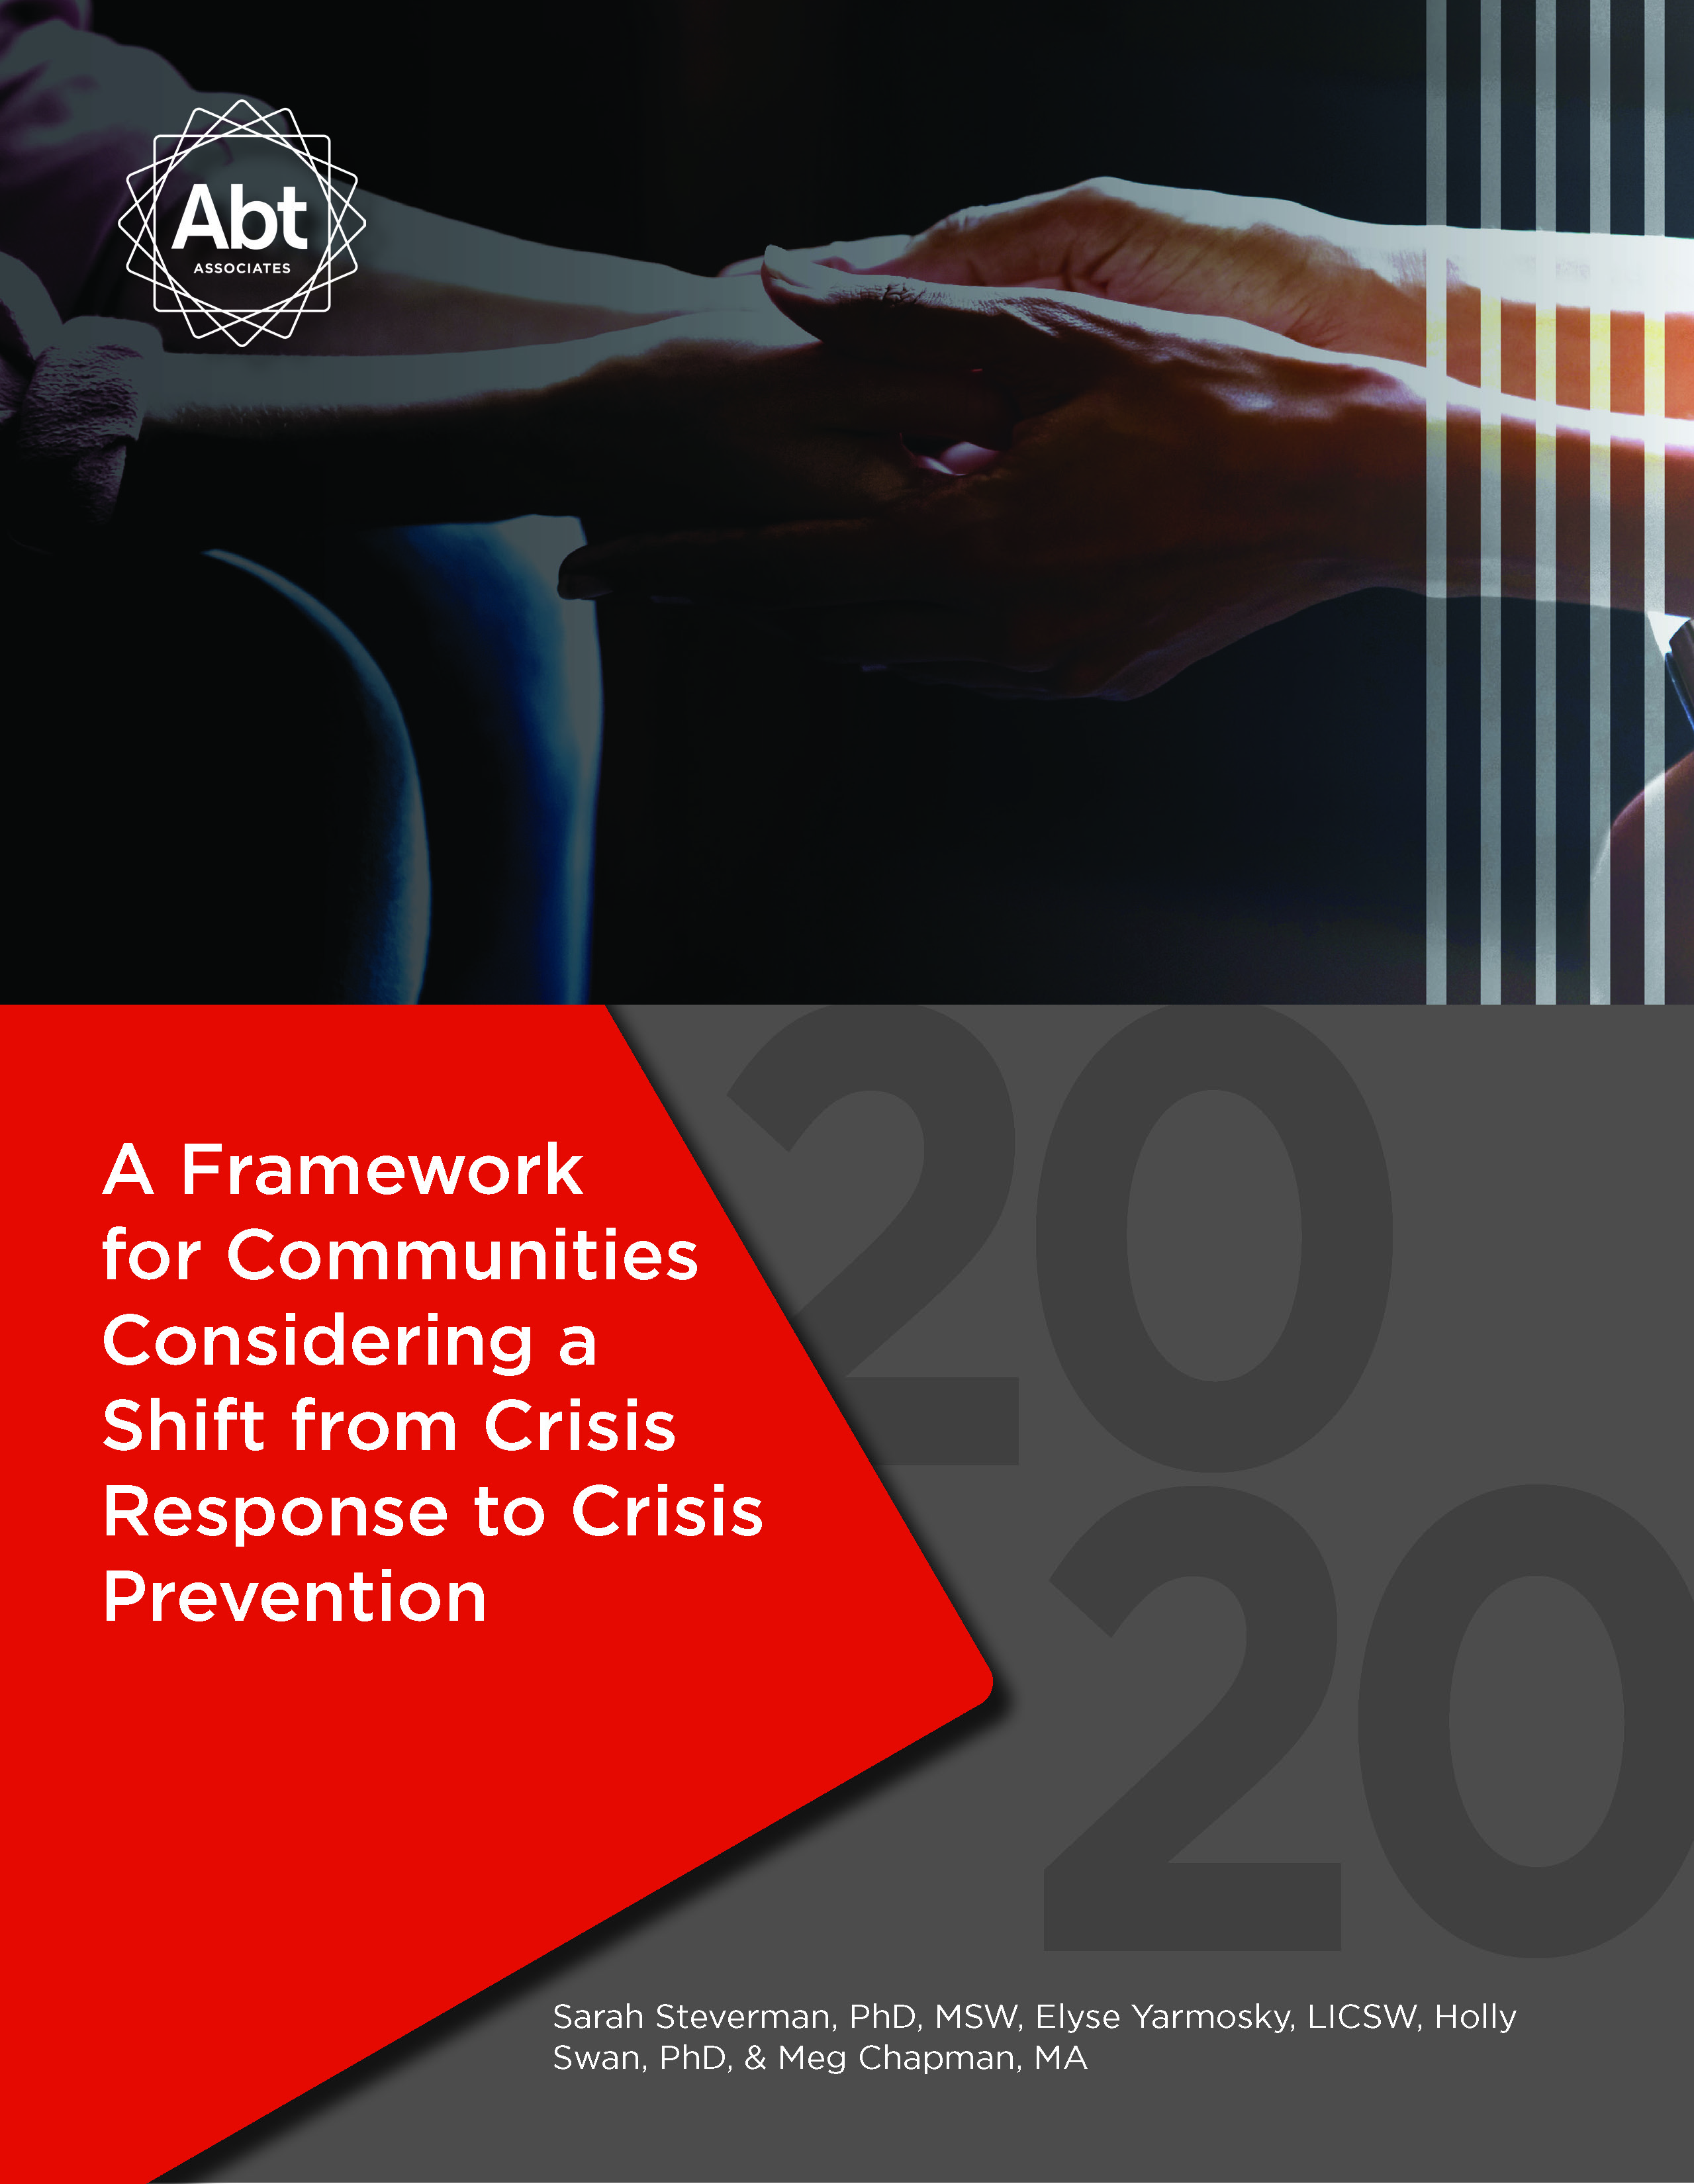 A Framework for Communities Considering a Shift from Crisis Response to Crisis Prevention